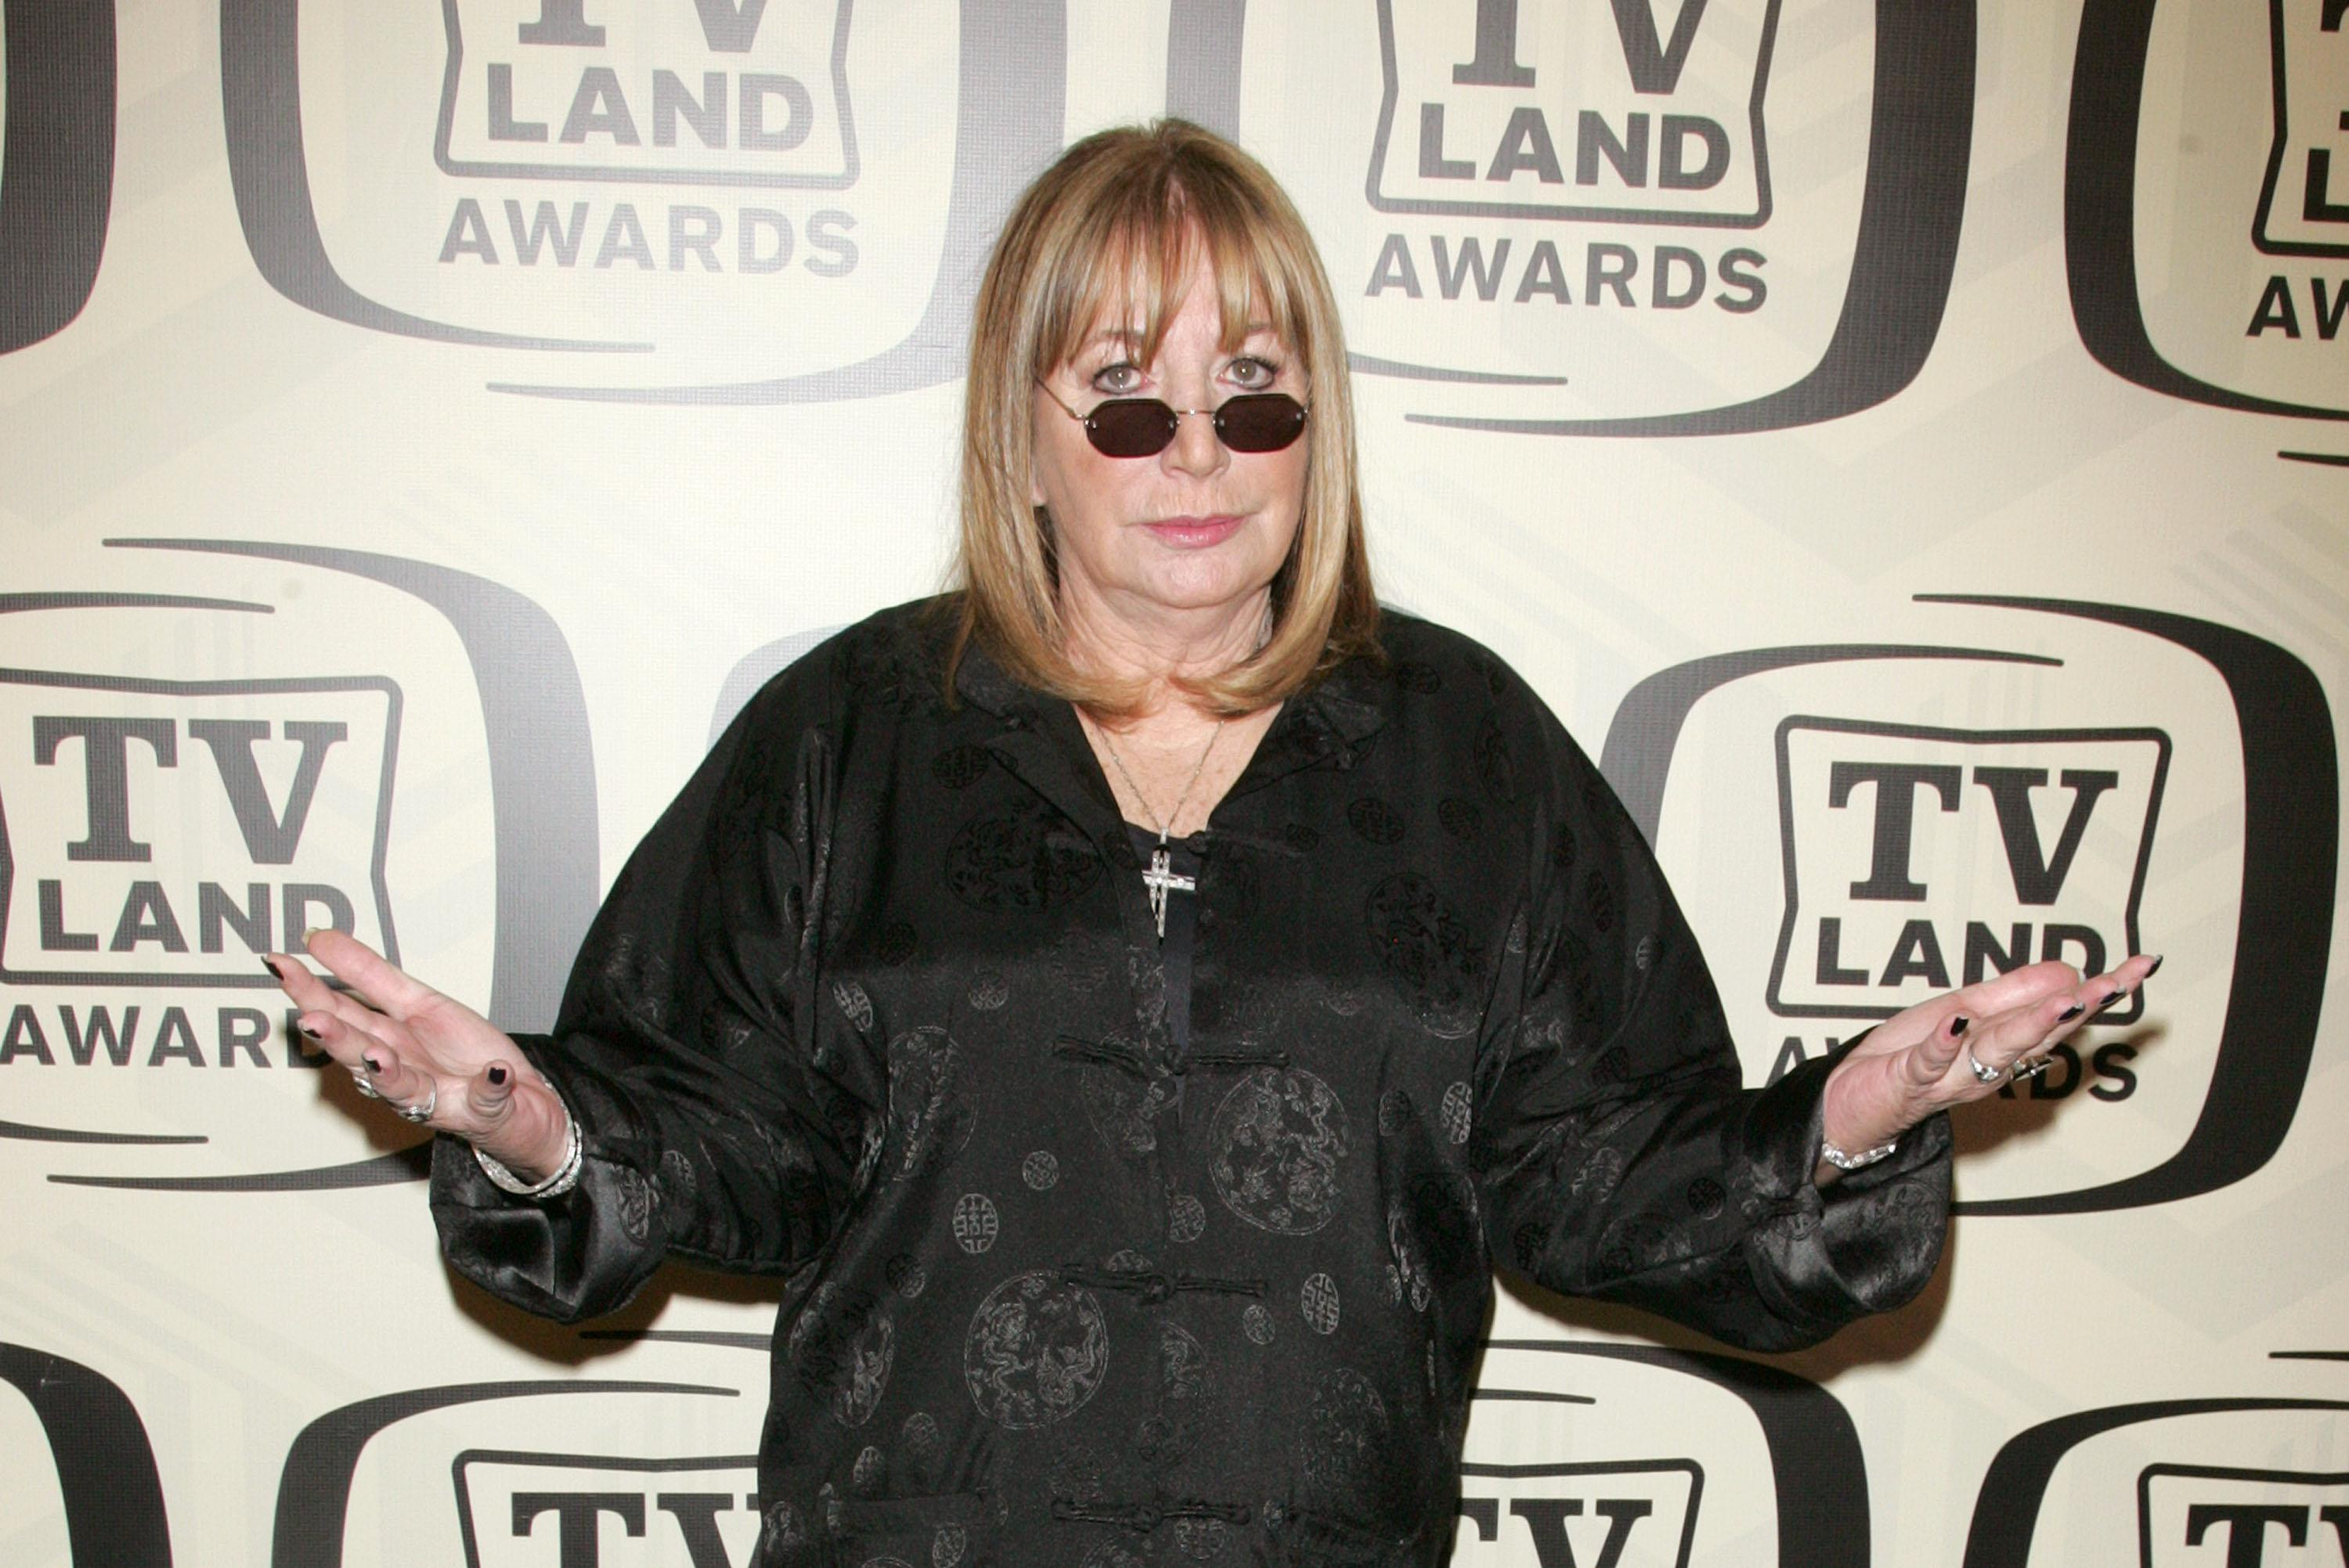 Penny Marshall, 'Big' director, 'Laverne & Shirley' star, dead at 75